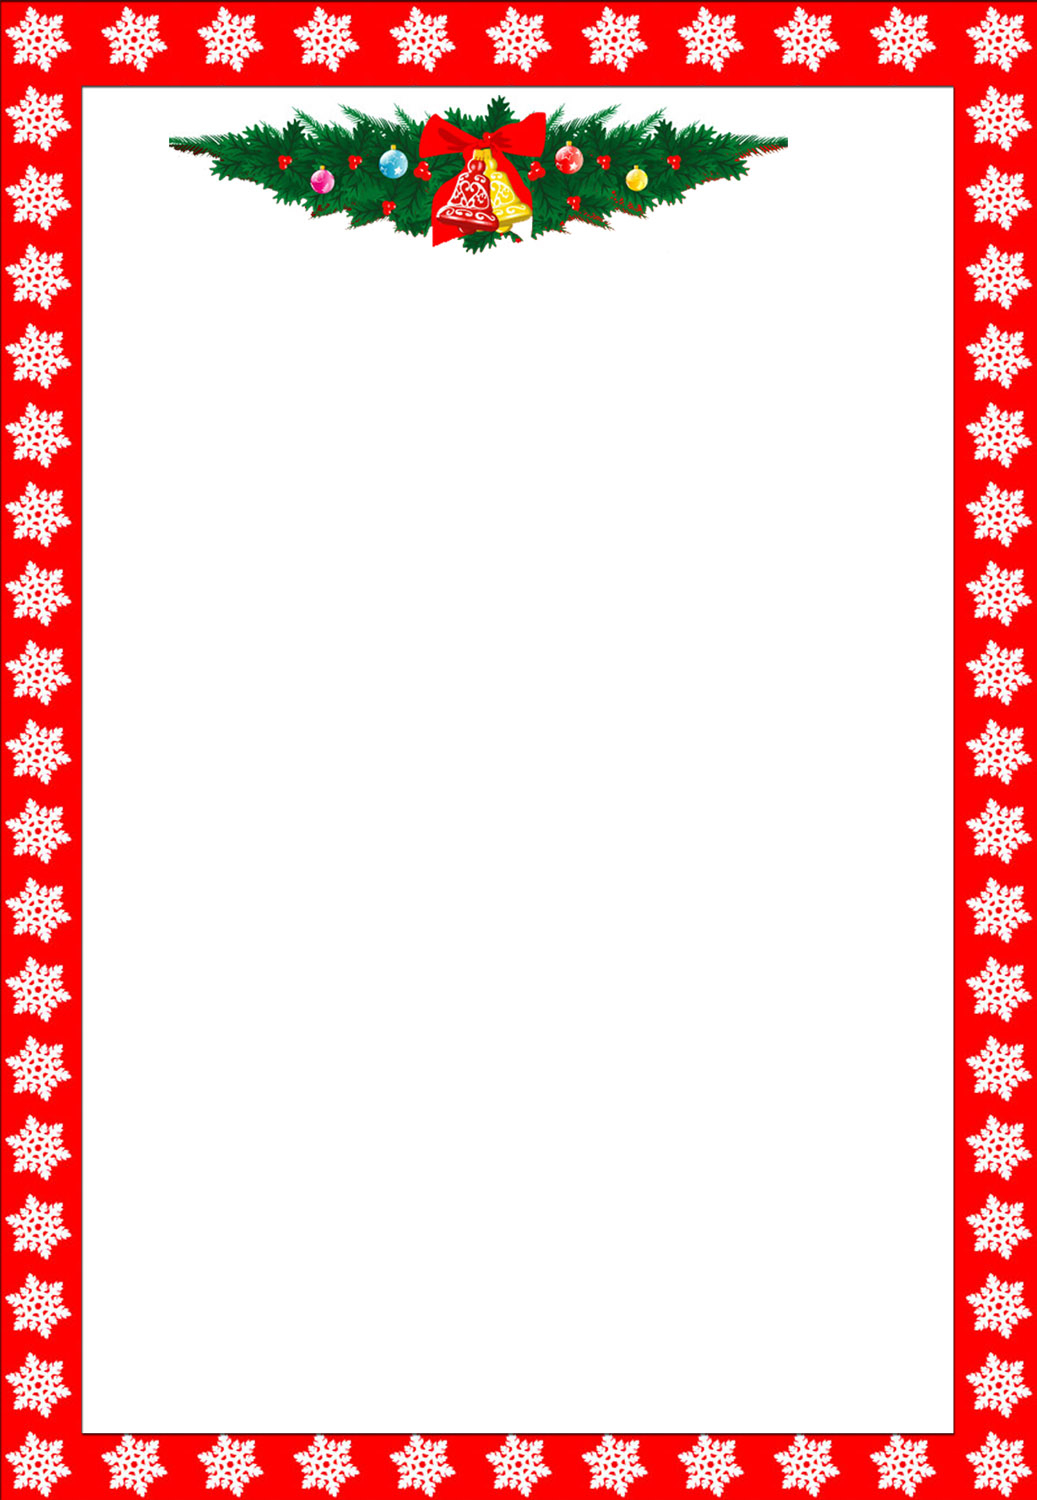 Free Printable Christmas Stationary Borders Trials Ireland - Free Printable Christmas Writing Paper With Lines